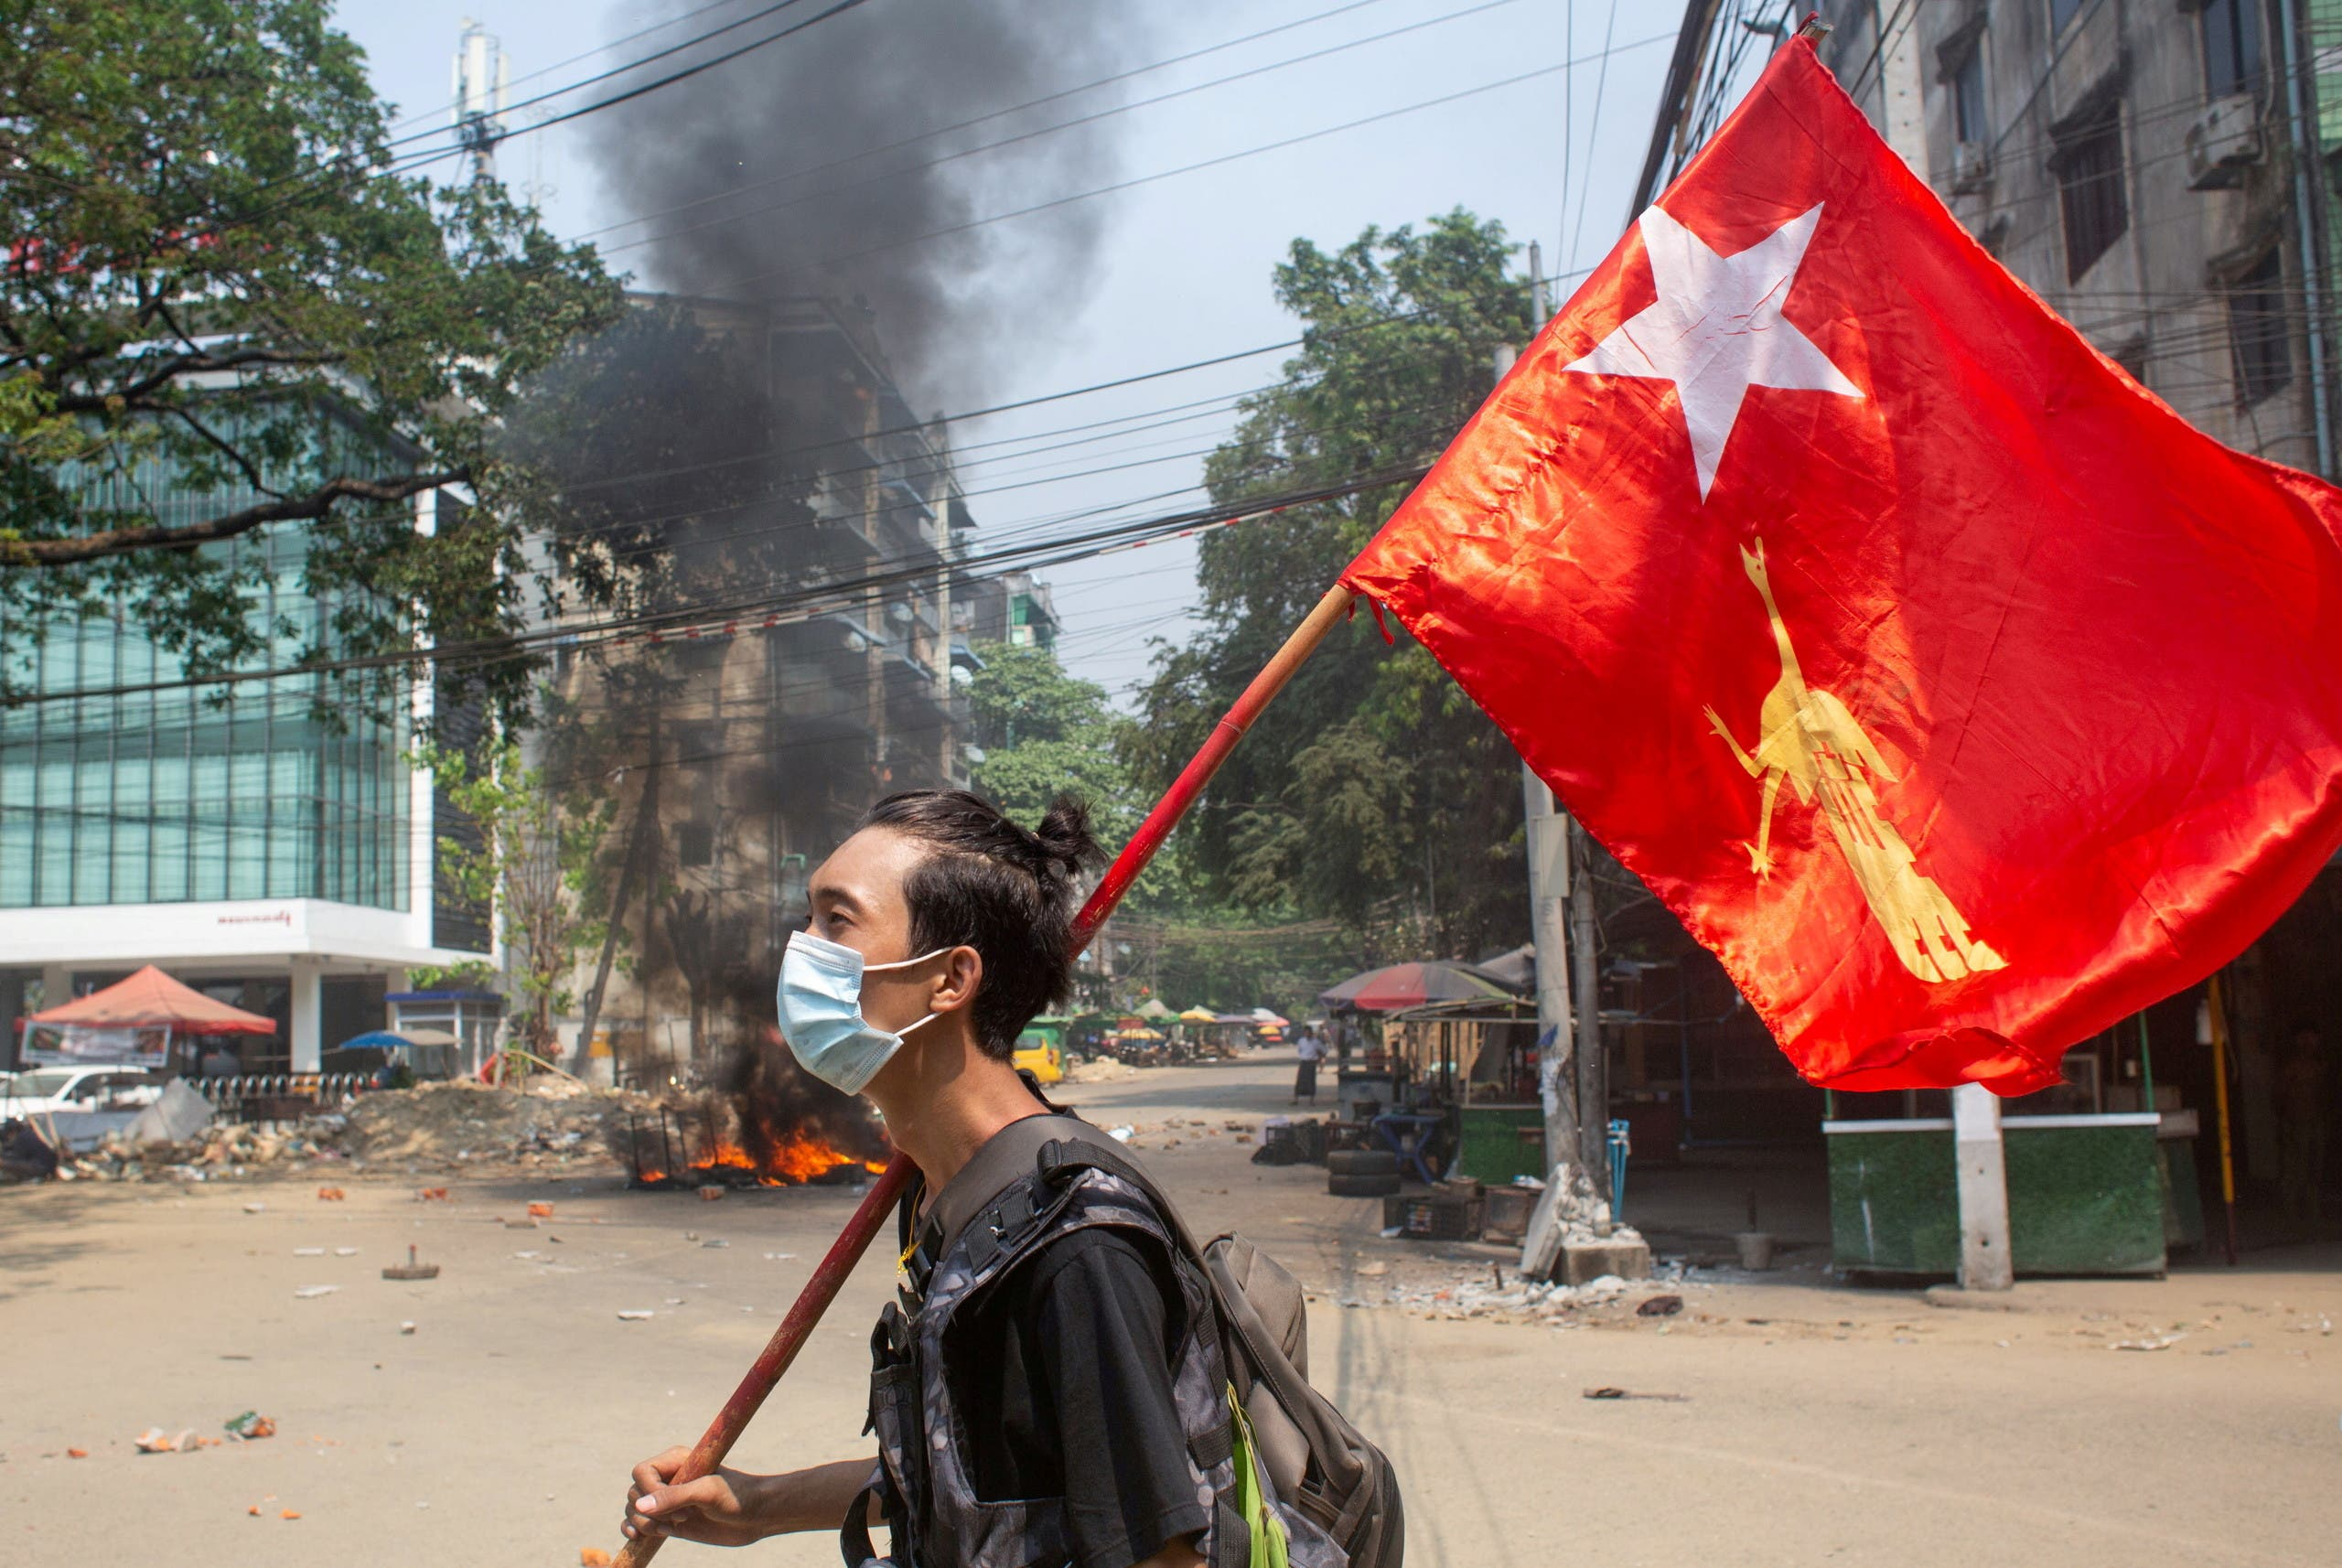 A man holds a National League for Democracy (NLD) flag during a protest against the military coup, in Yangon, Myanmar March 27, 2021. (File Photo: Reuters)